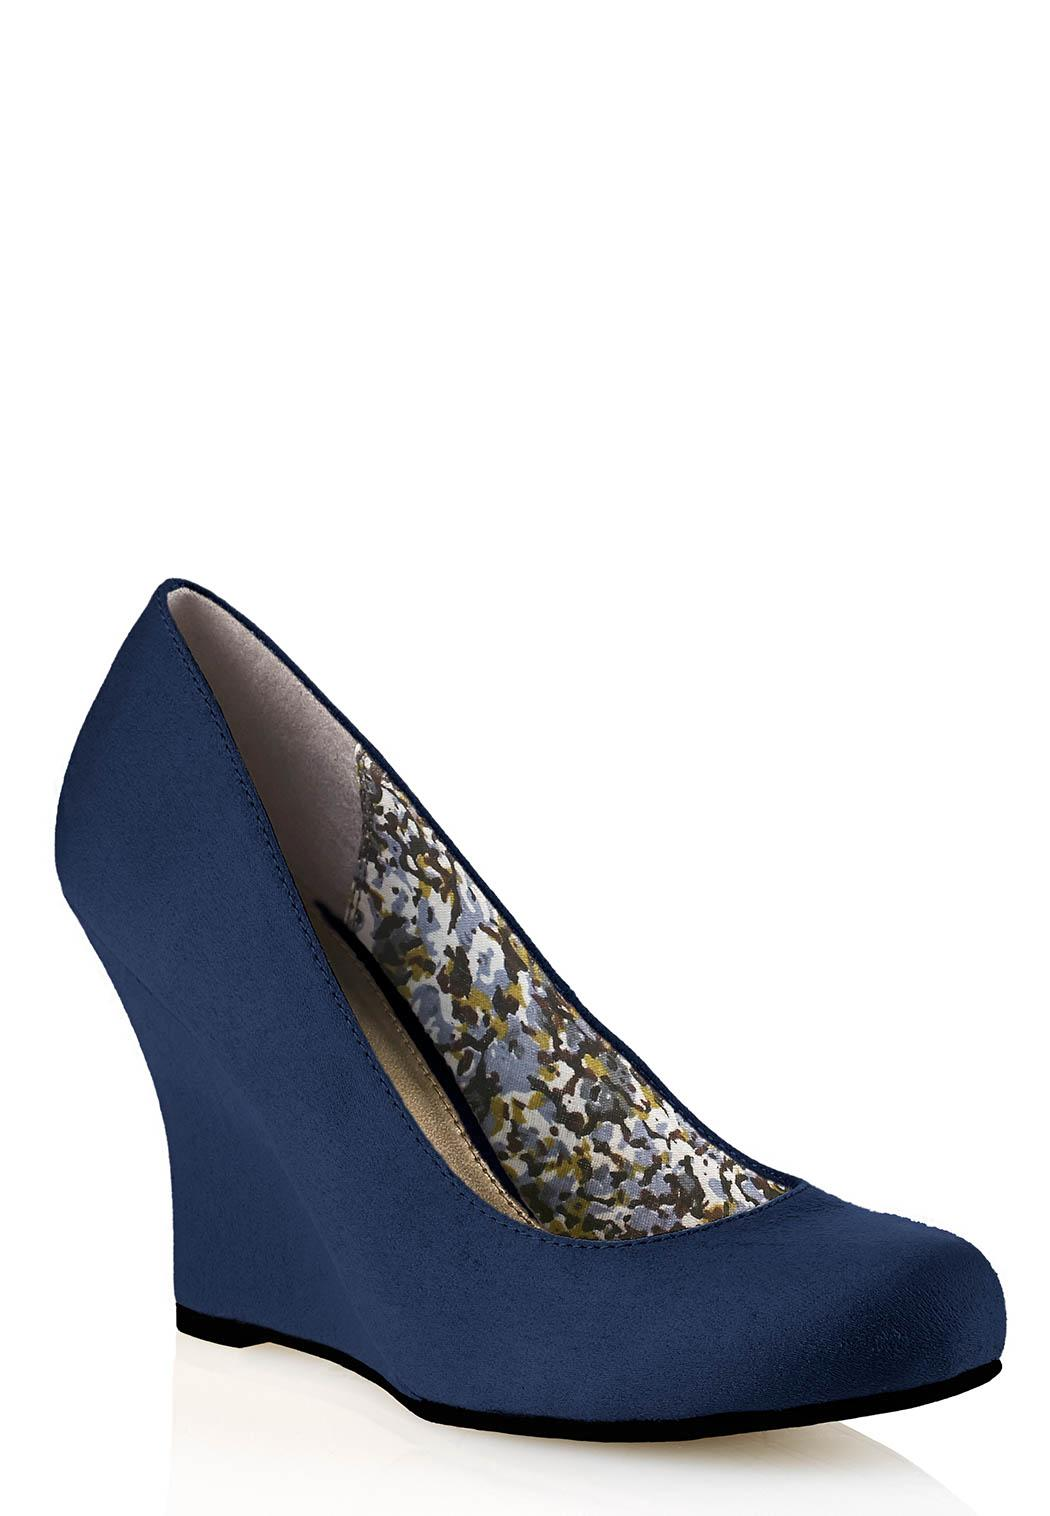 Home   Shoes   Wedges   Round Toe Wedges (Style #27106798